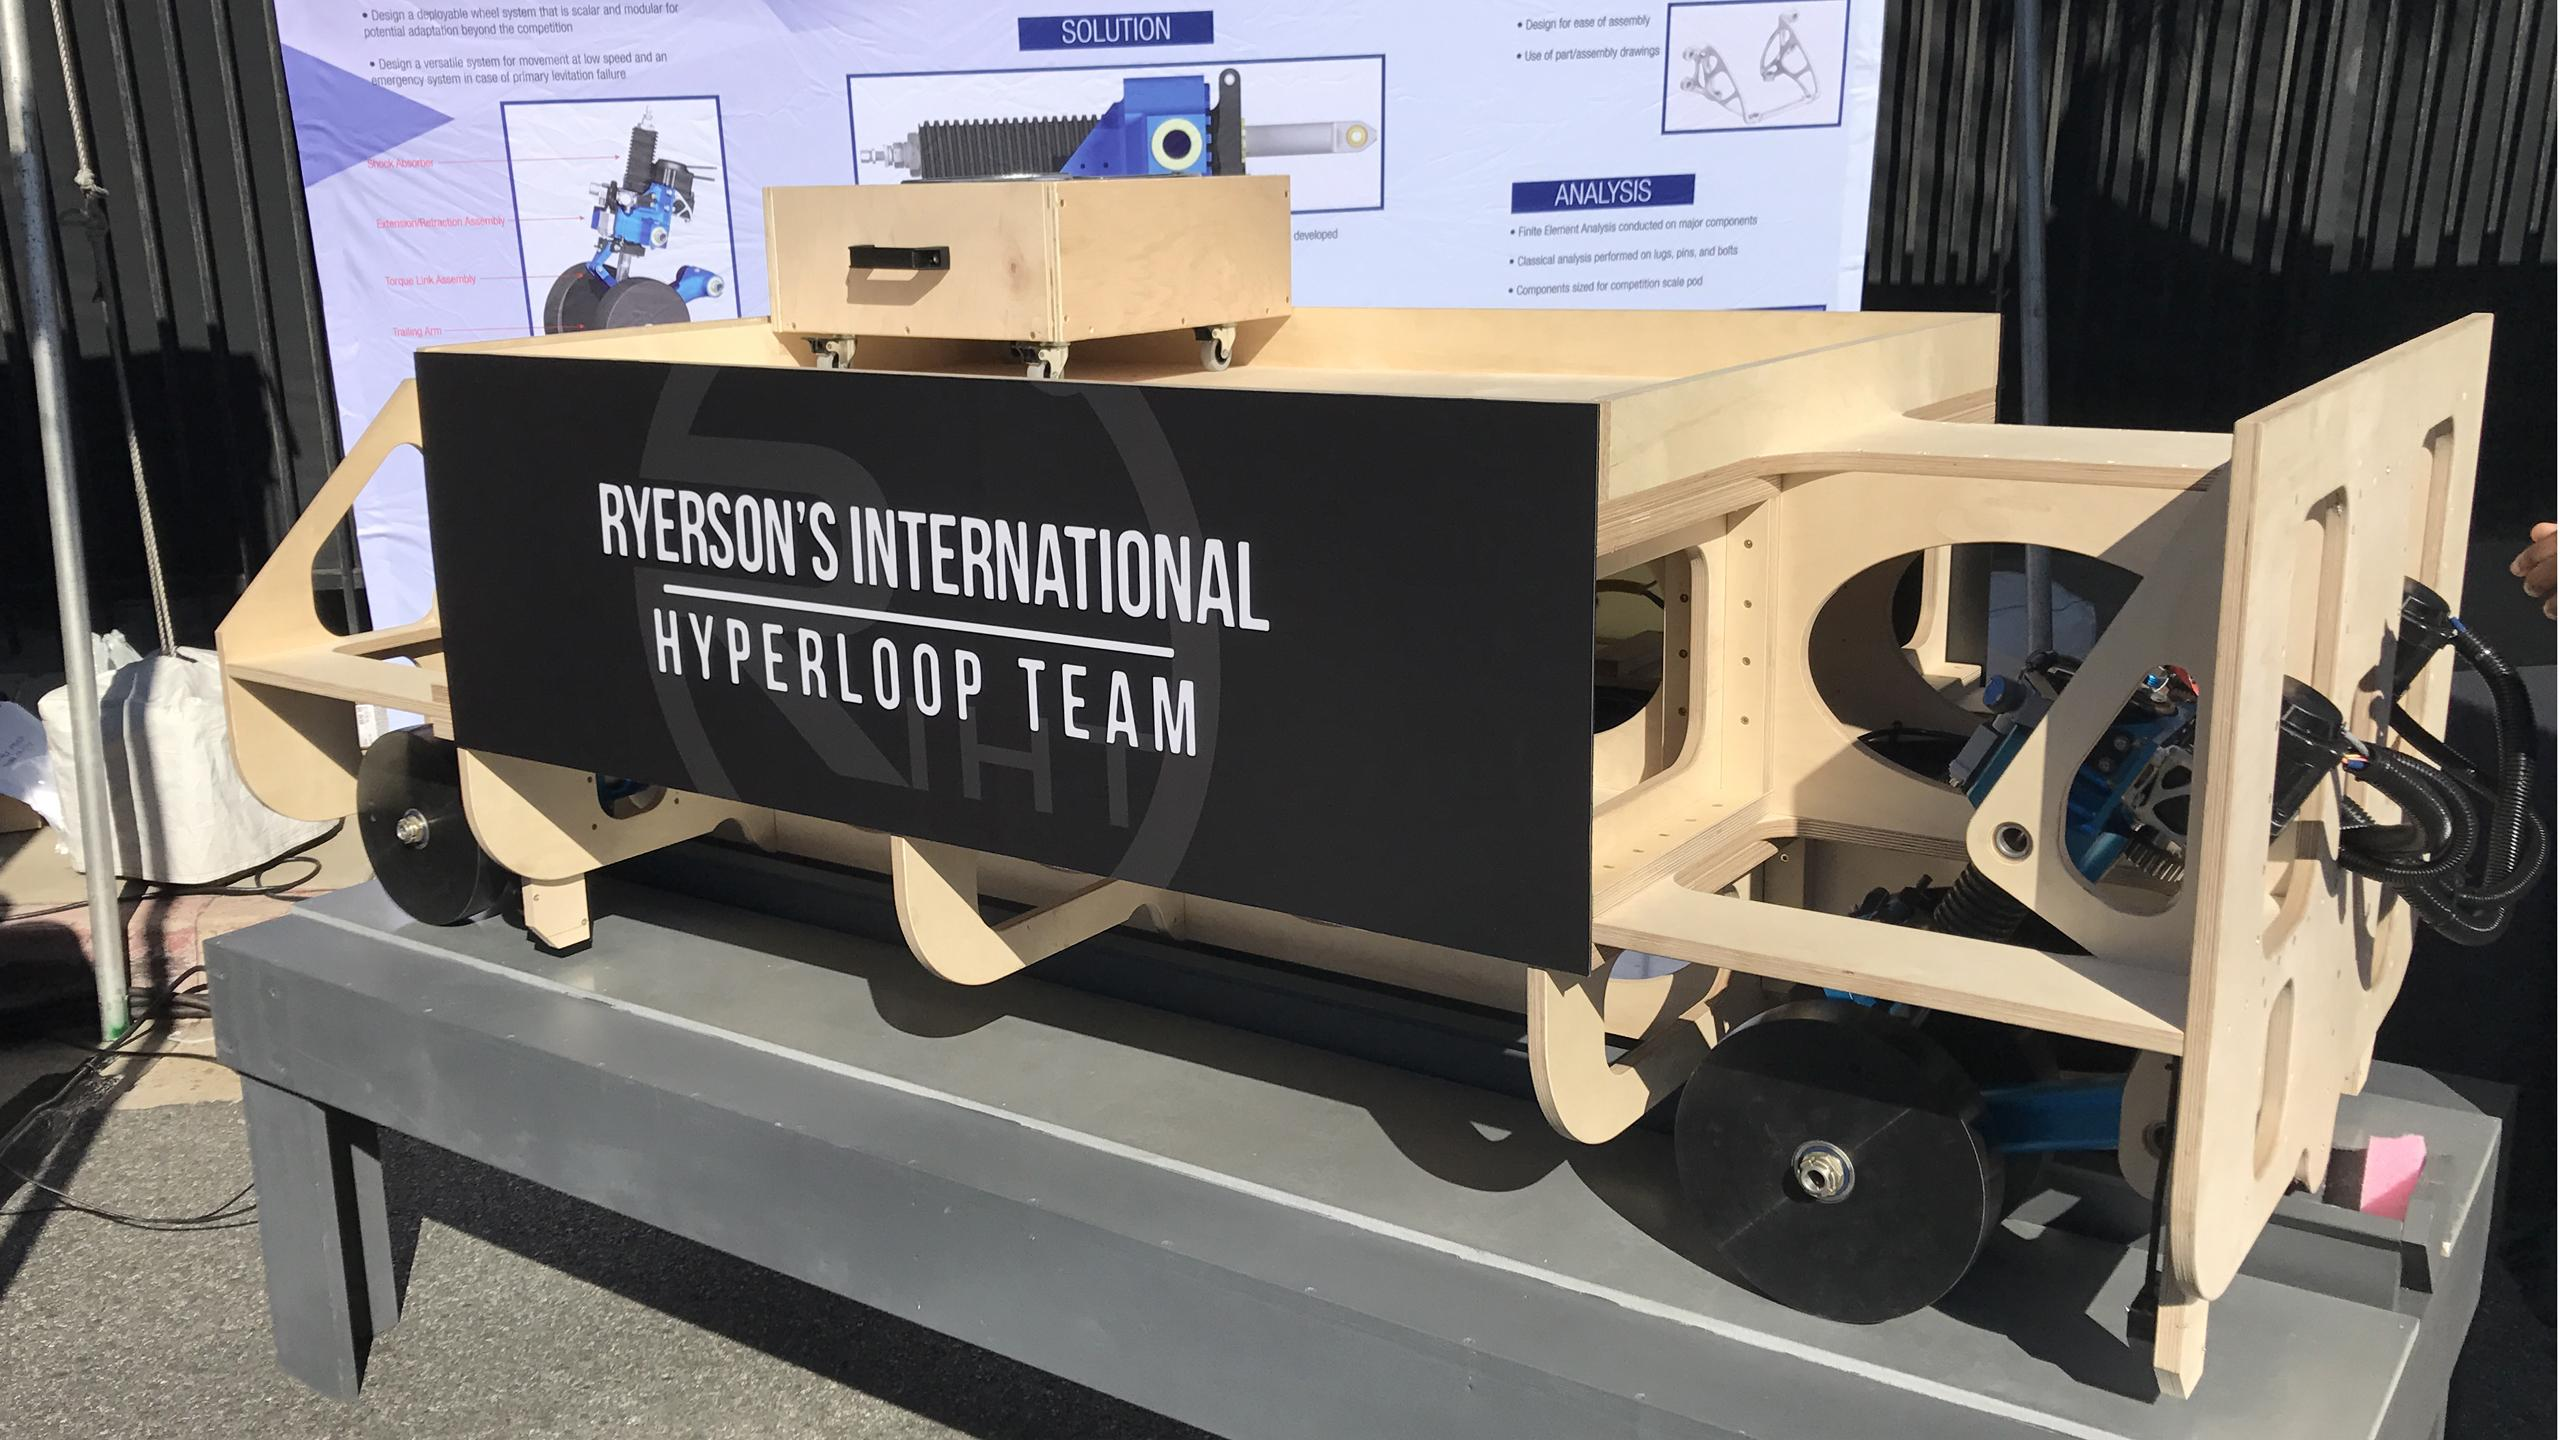 The chassis Ryerson's Hyperloop team uses to display its system.